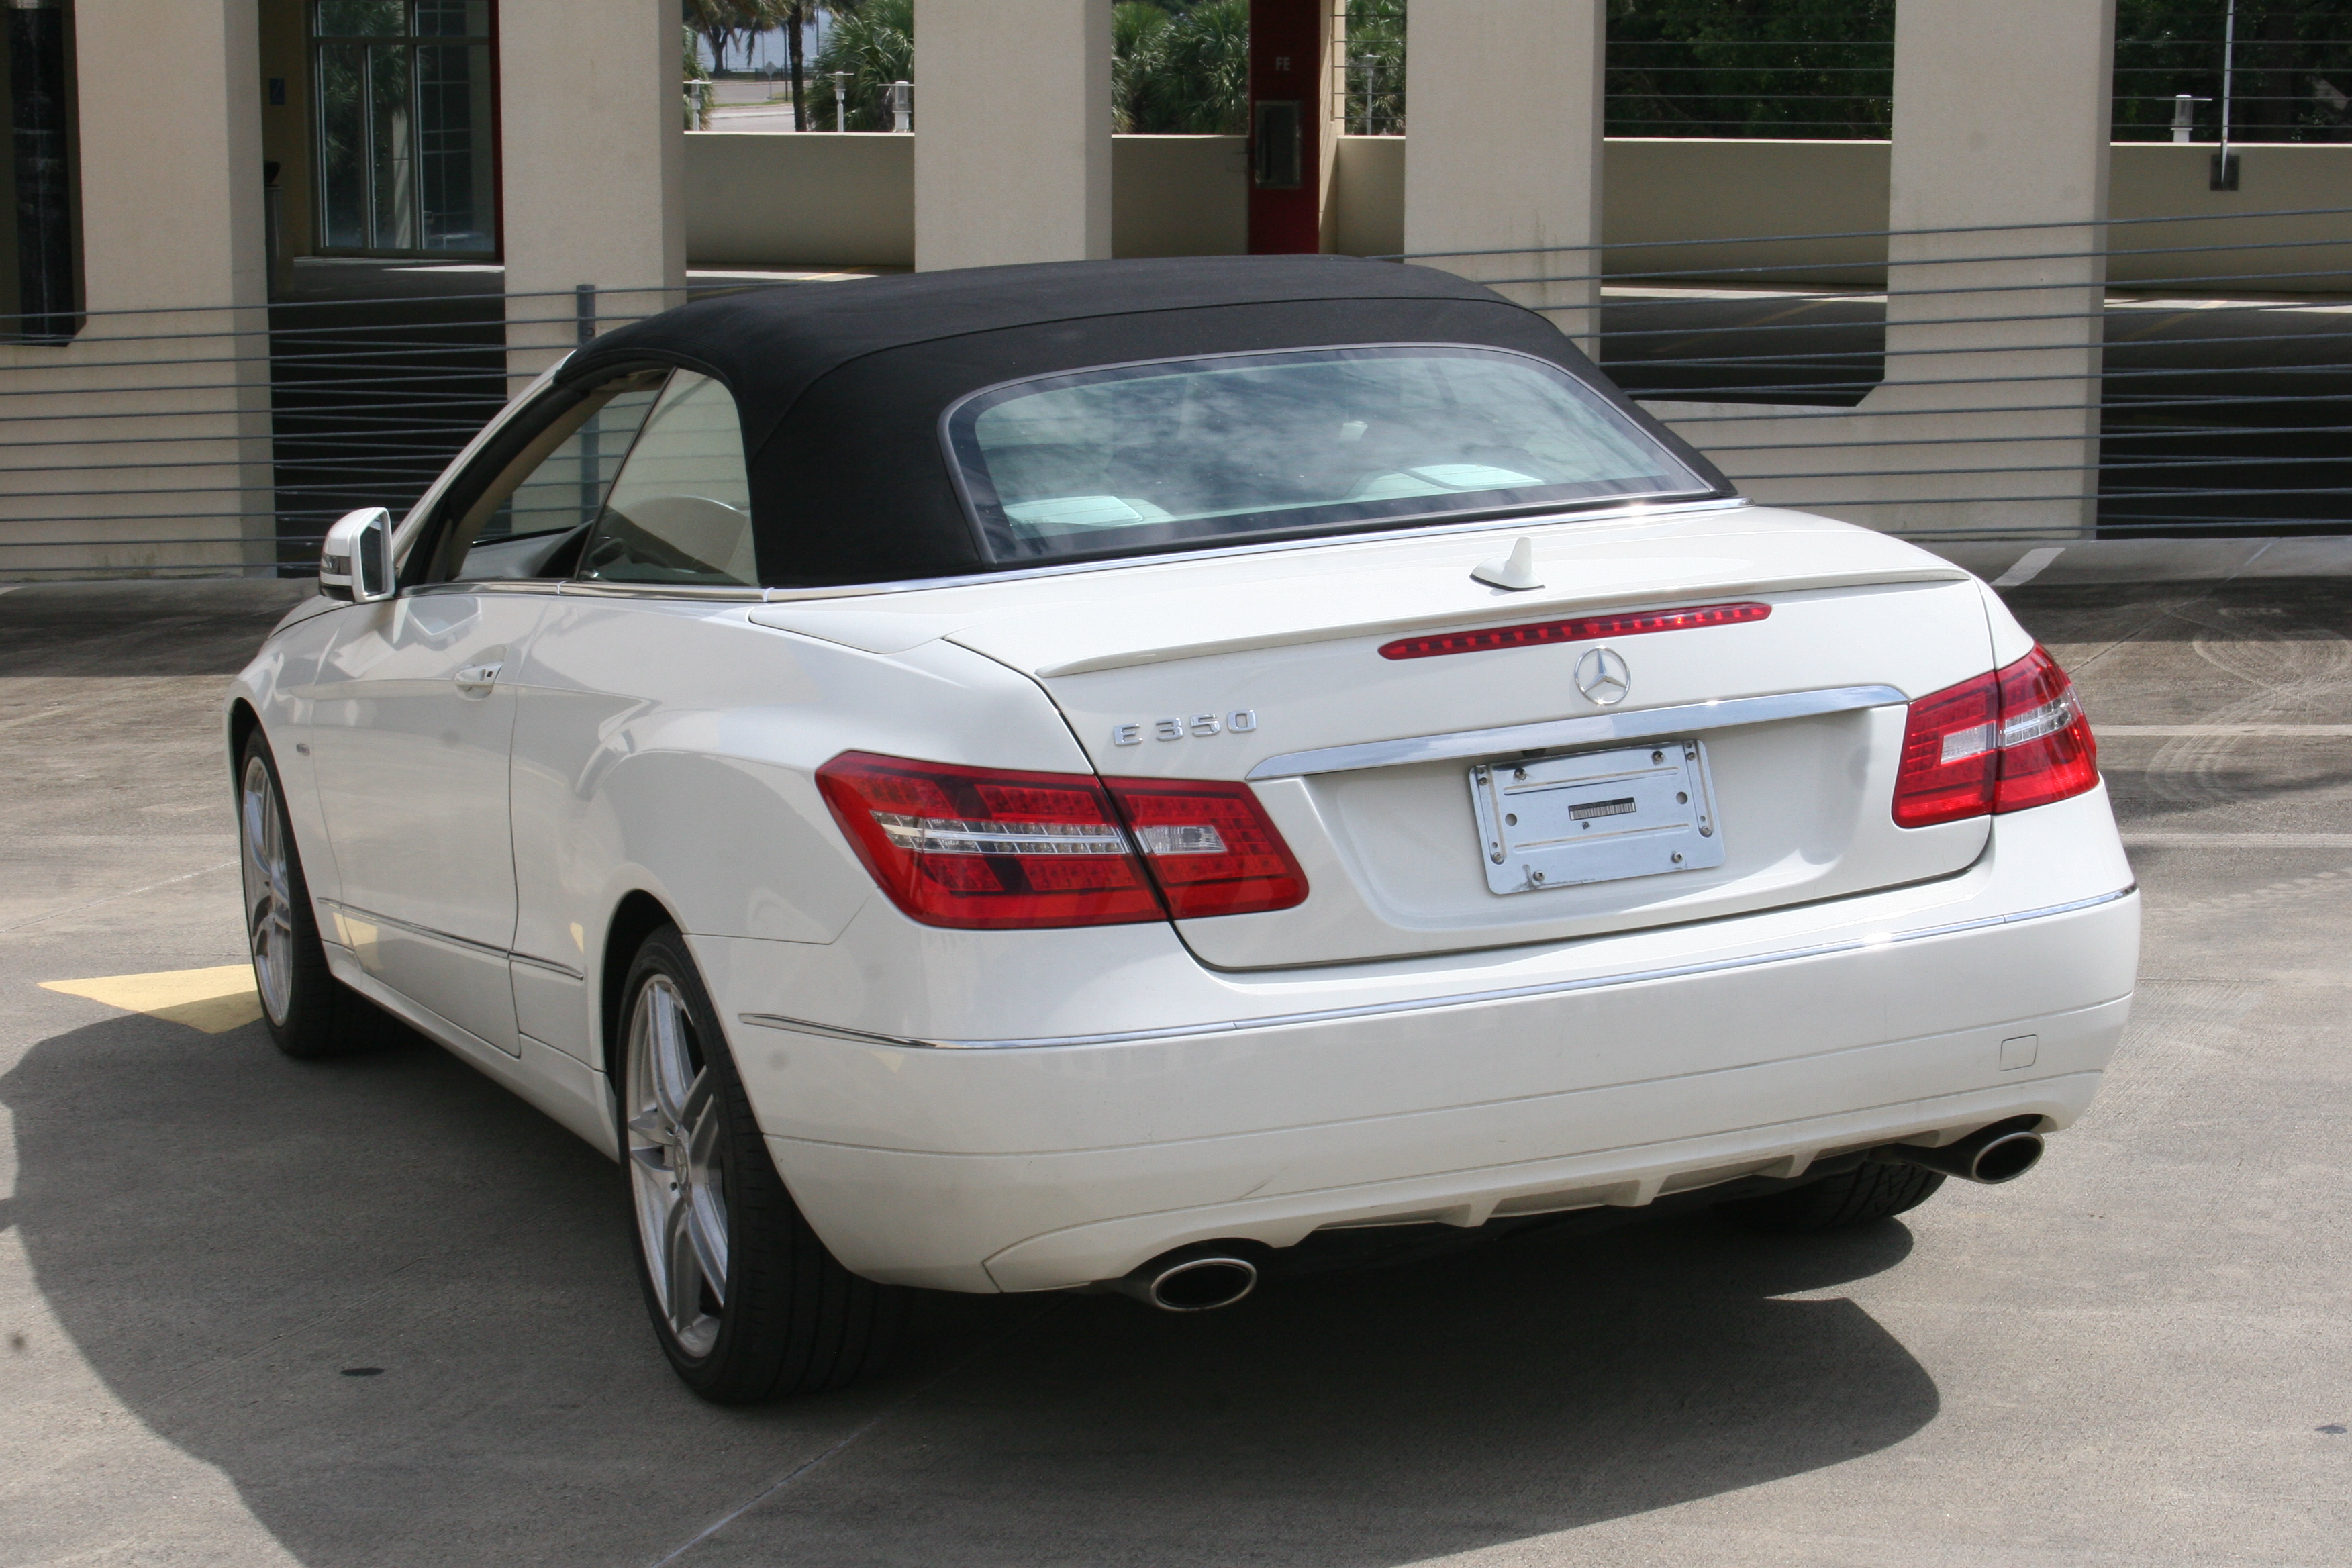 franks used sale oregon wholesale benz premium luxury sherwood company awd for at mercedes auto in